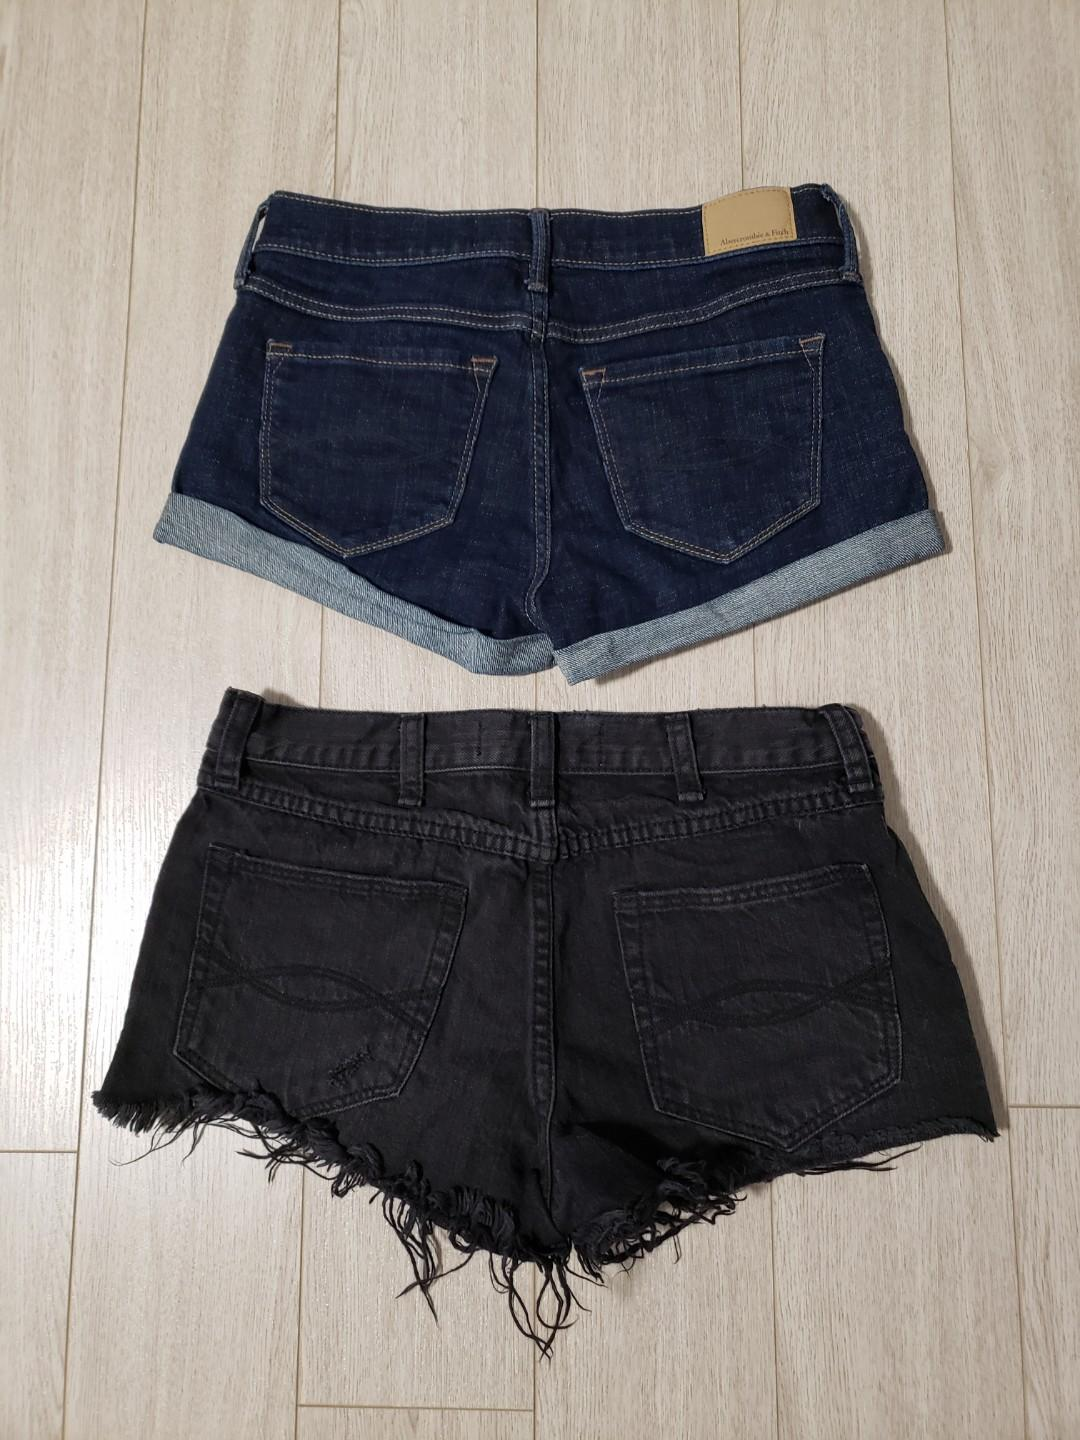 Abercrombie Fitch Shorts 2